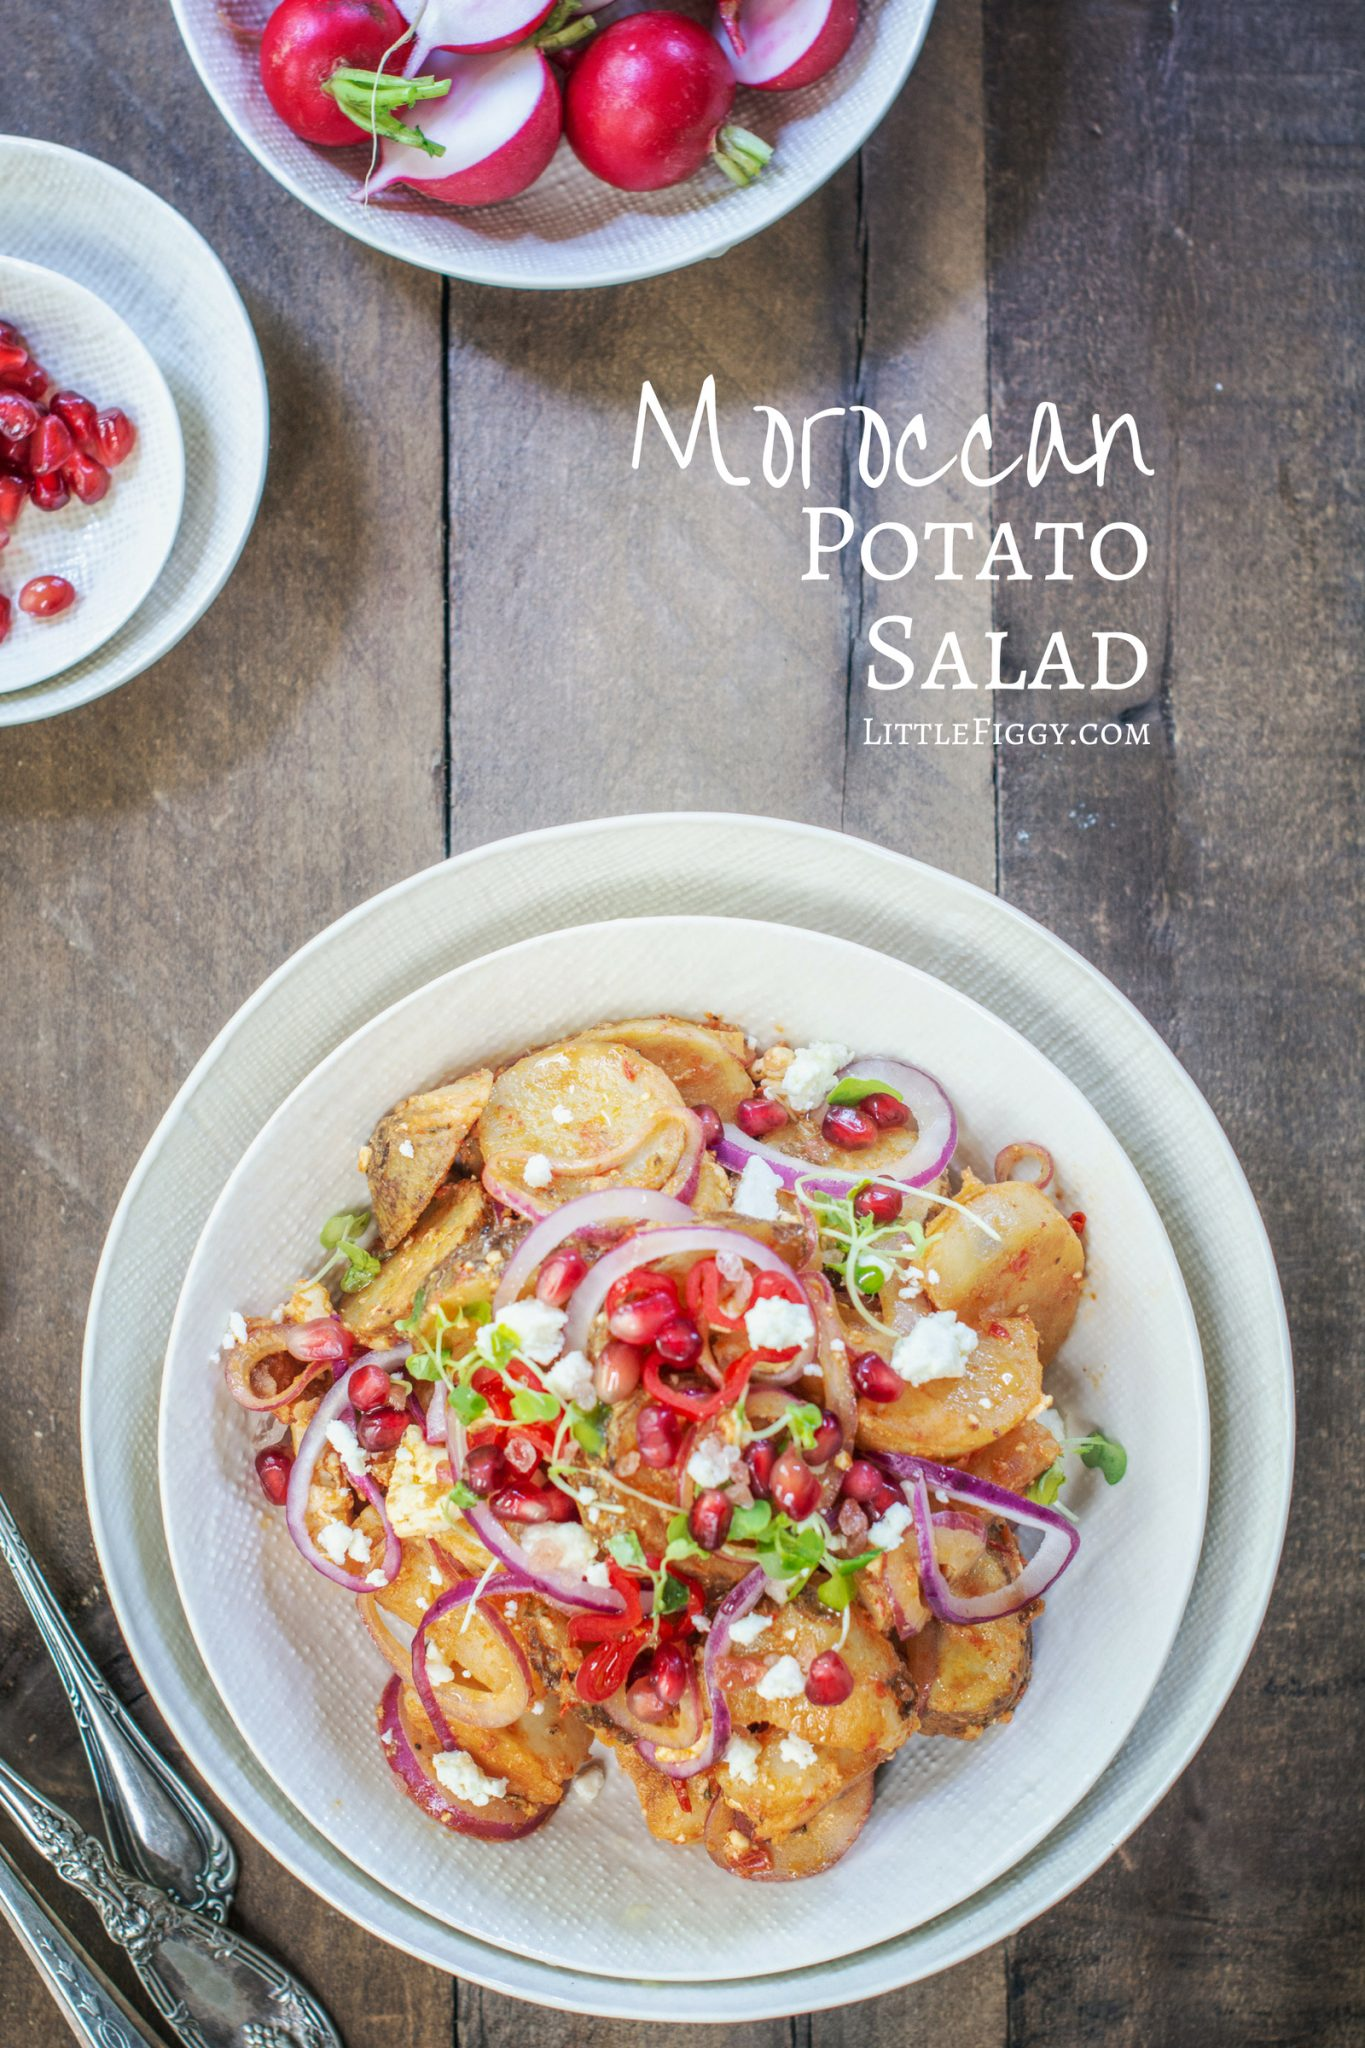 Try this easy to make Moroccan Potato Salad recipe, full of exotic flavors & perfect for BBQ's & picnics any time of year! Made with @Idahopotato for the best taste. Get the recipe at Little Figgy Food. #ad #IdahoPotatoes